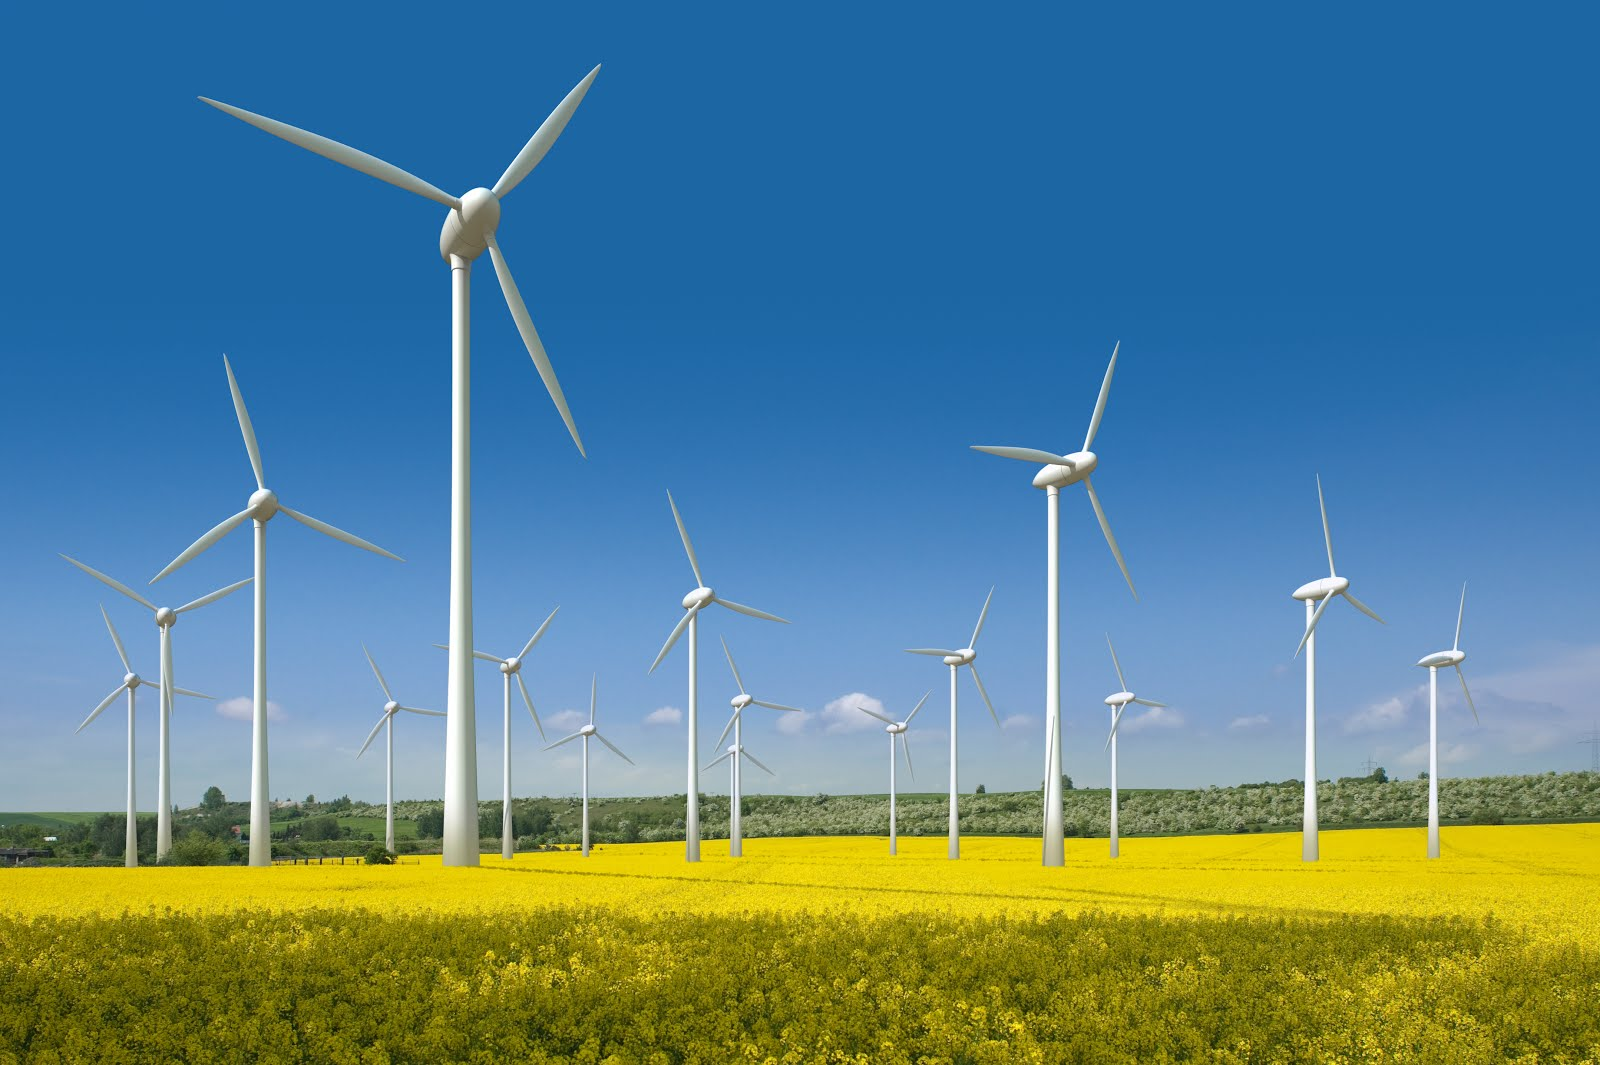 Eco Themepics - Windpower